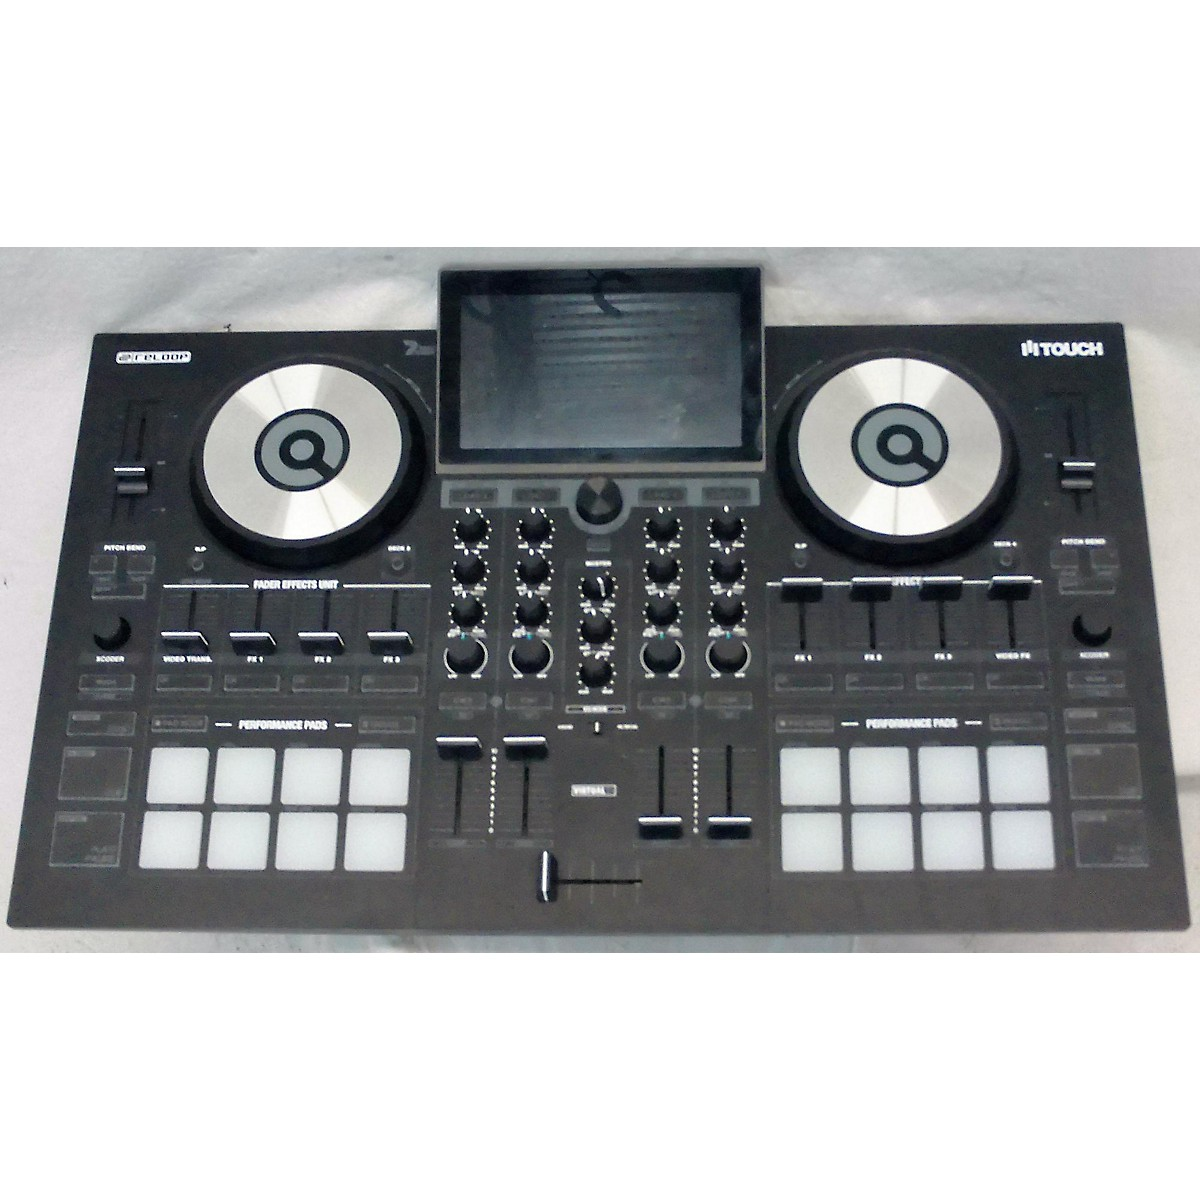 Reloop TOUCH VirtualDJ Controller With Touchscreen DJ Controller